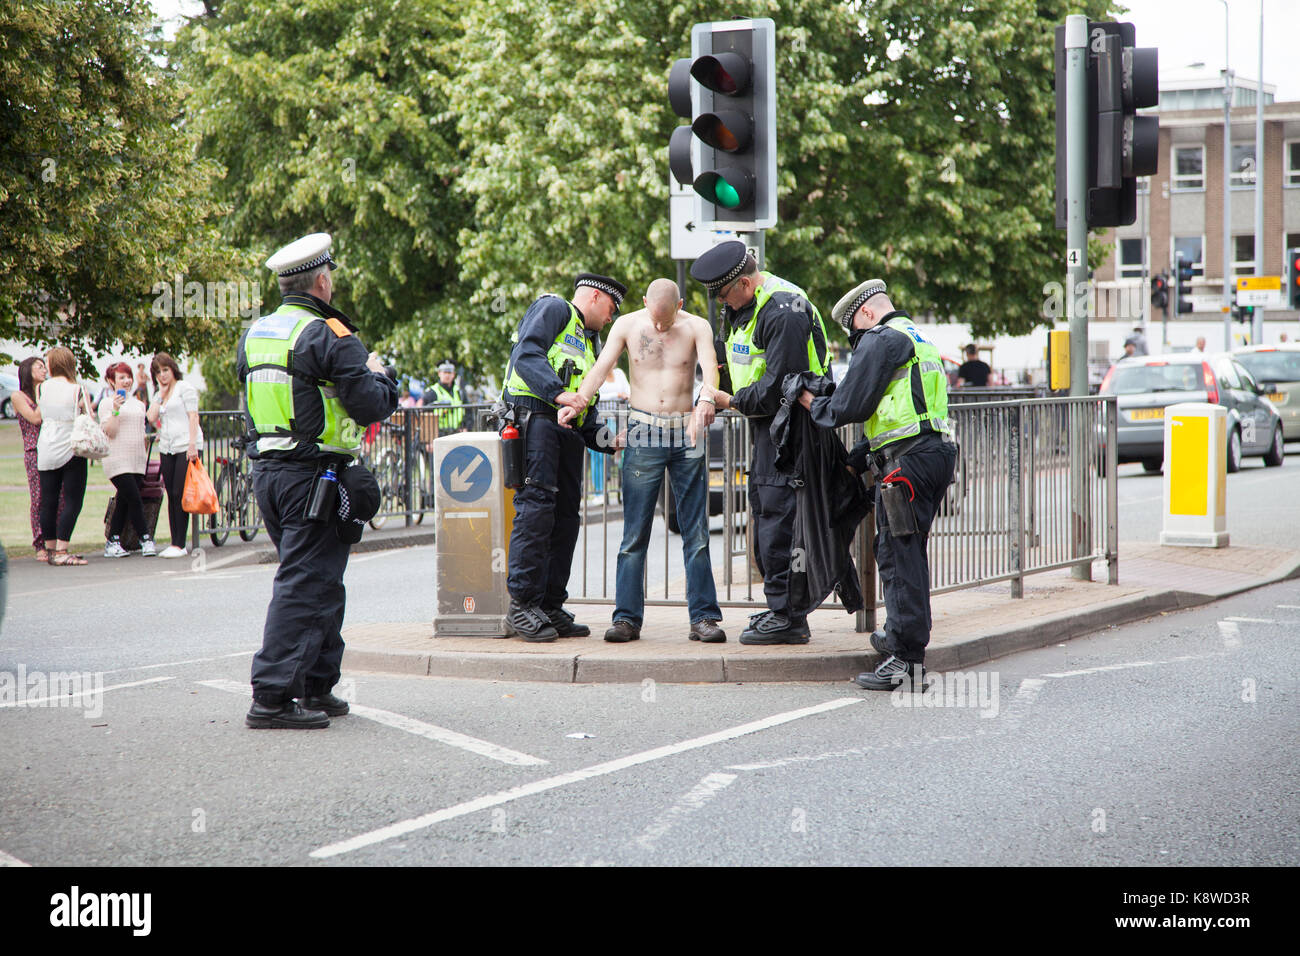 Police stop and search a male in Cambridge. - Stock Image